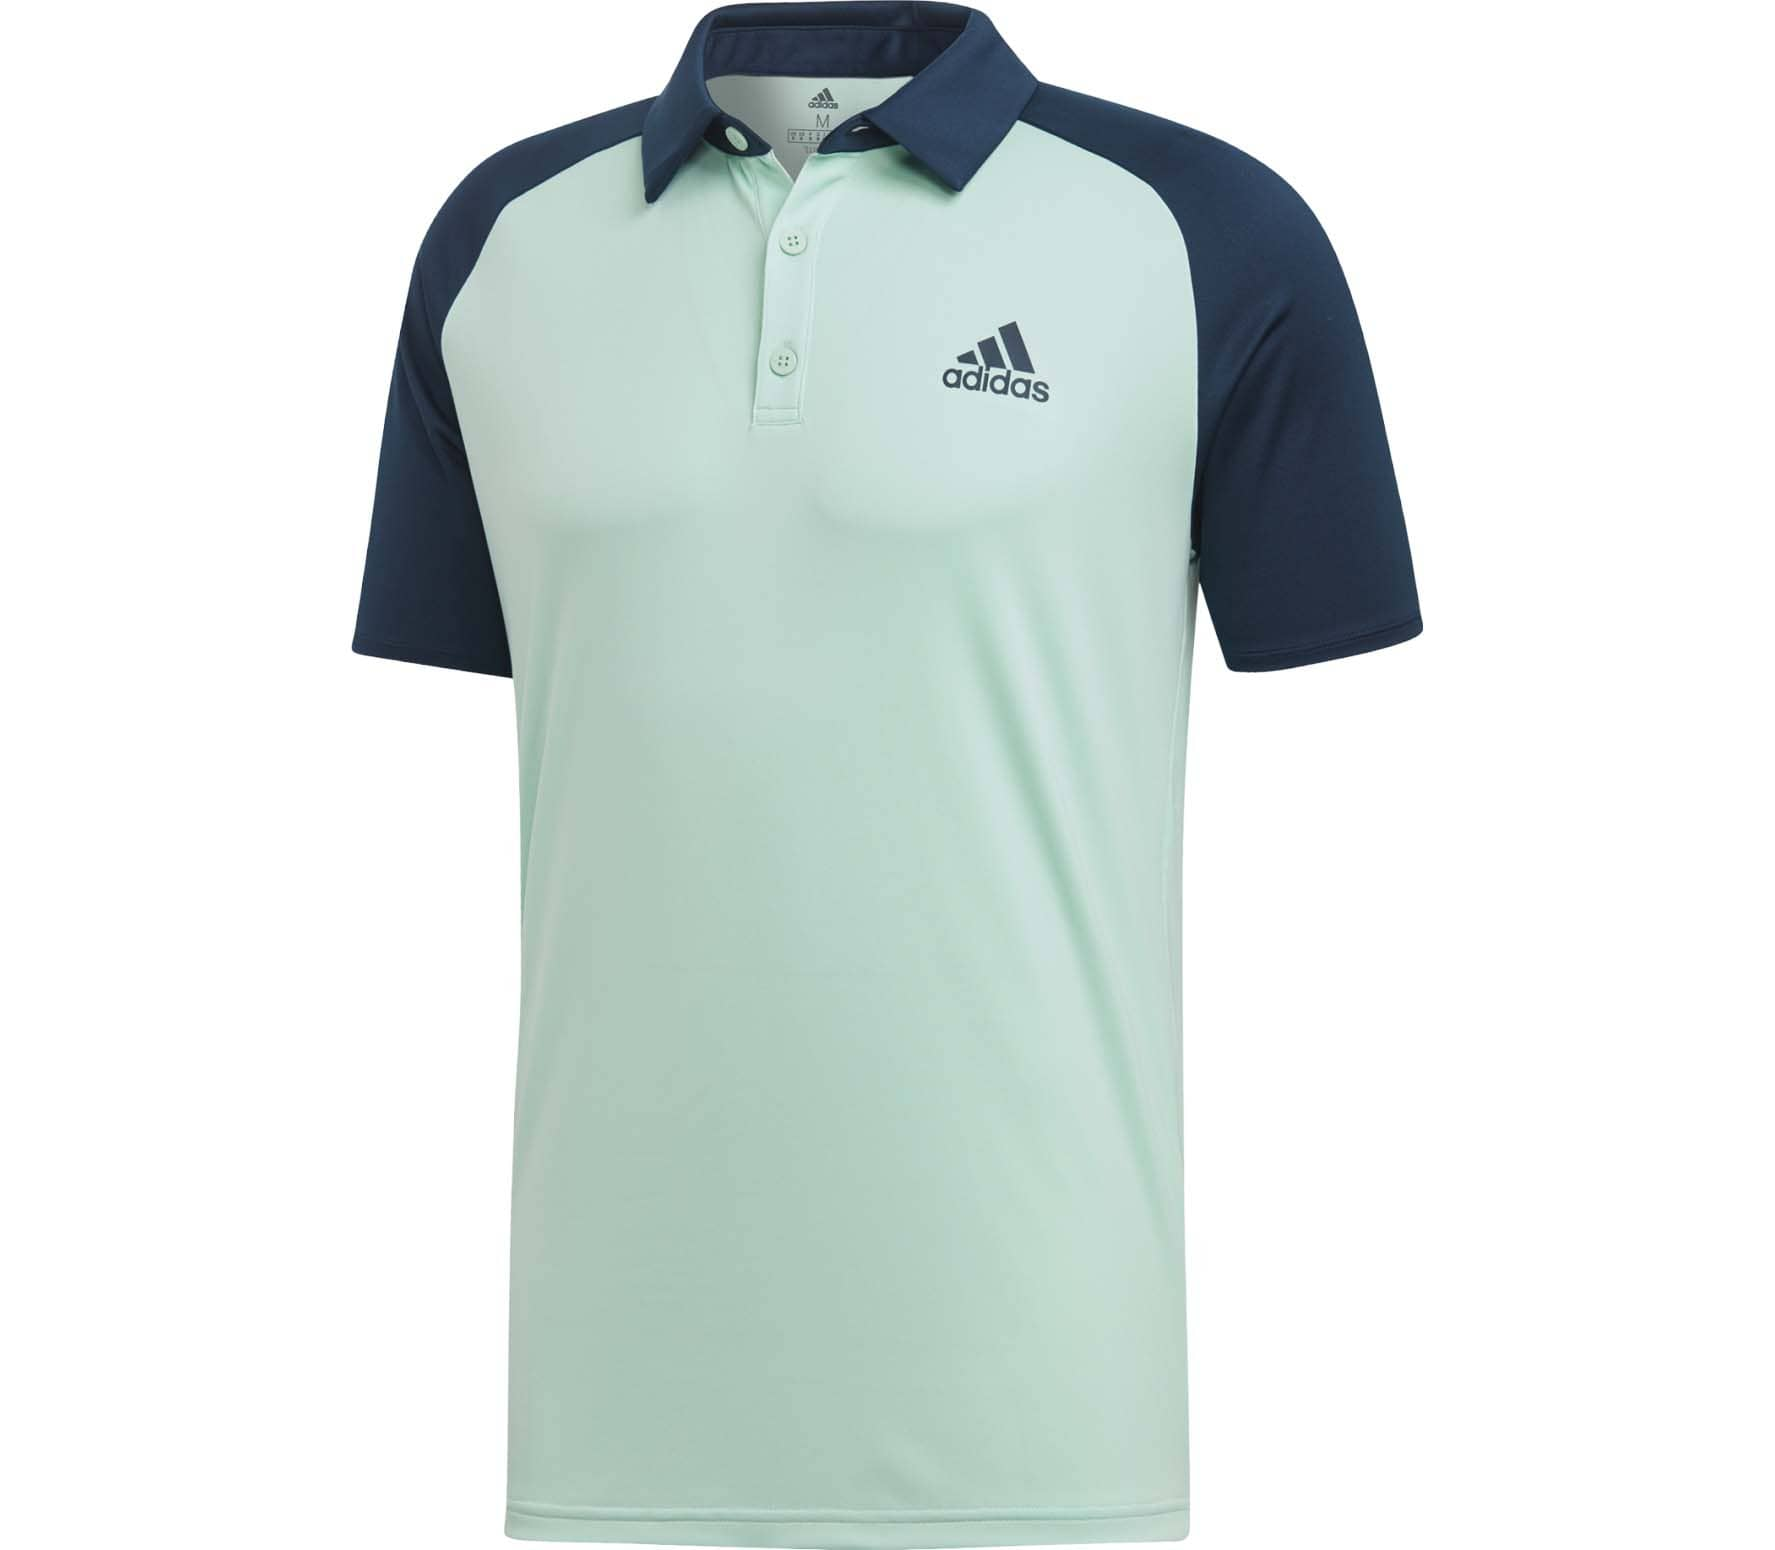 911a96d4e5 adidas Performance - Club C/B men's tennis polo top (turquoise/blue ...